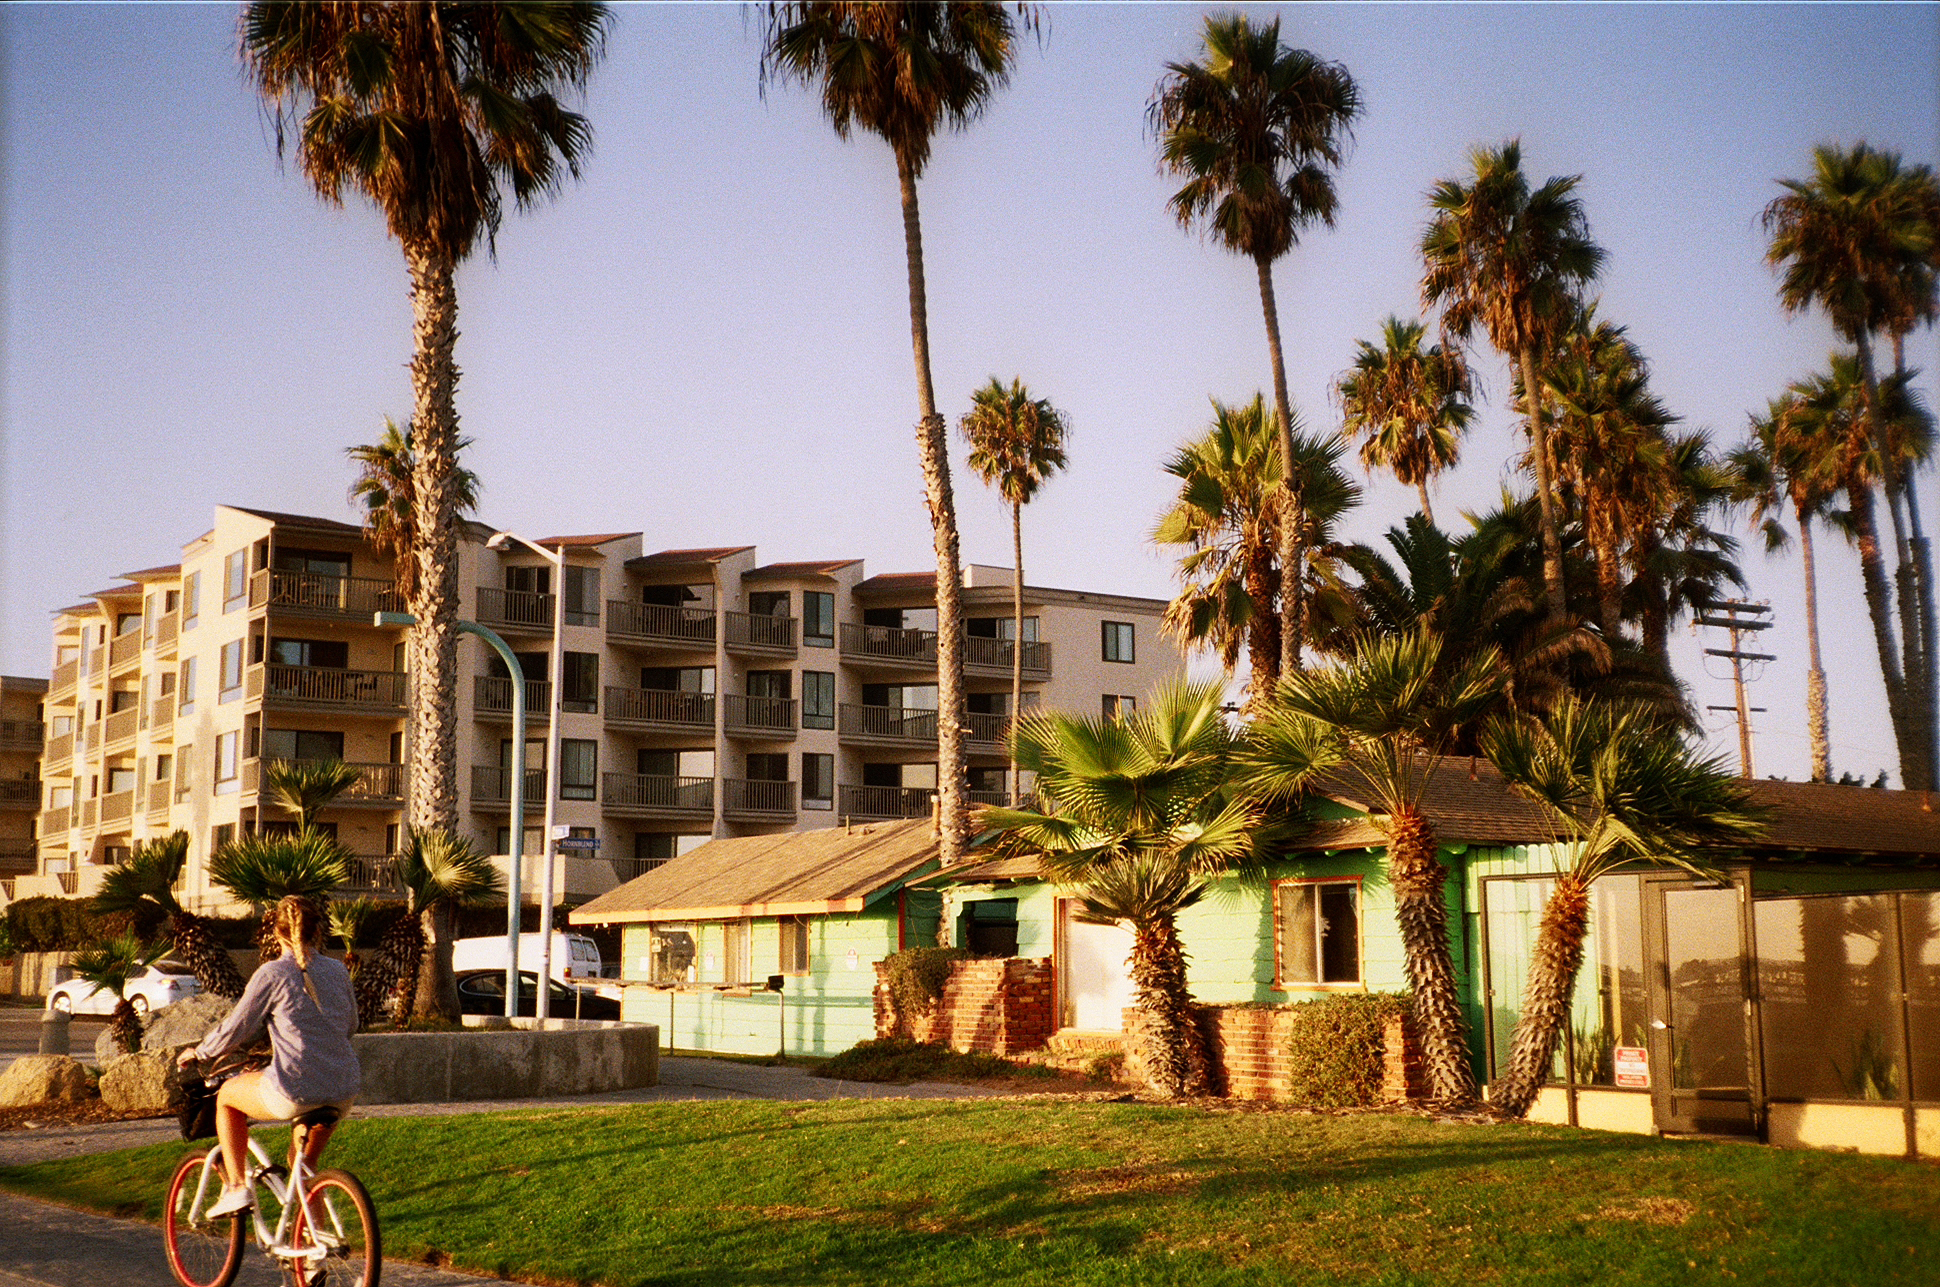 California San Diego 35mm film diary by London based photographer Ailera Stone